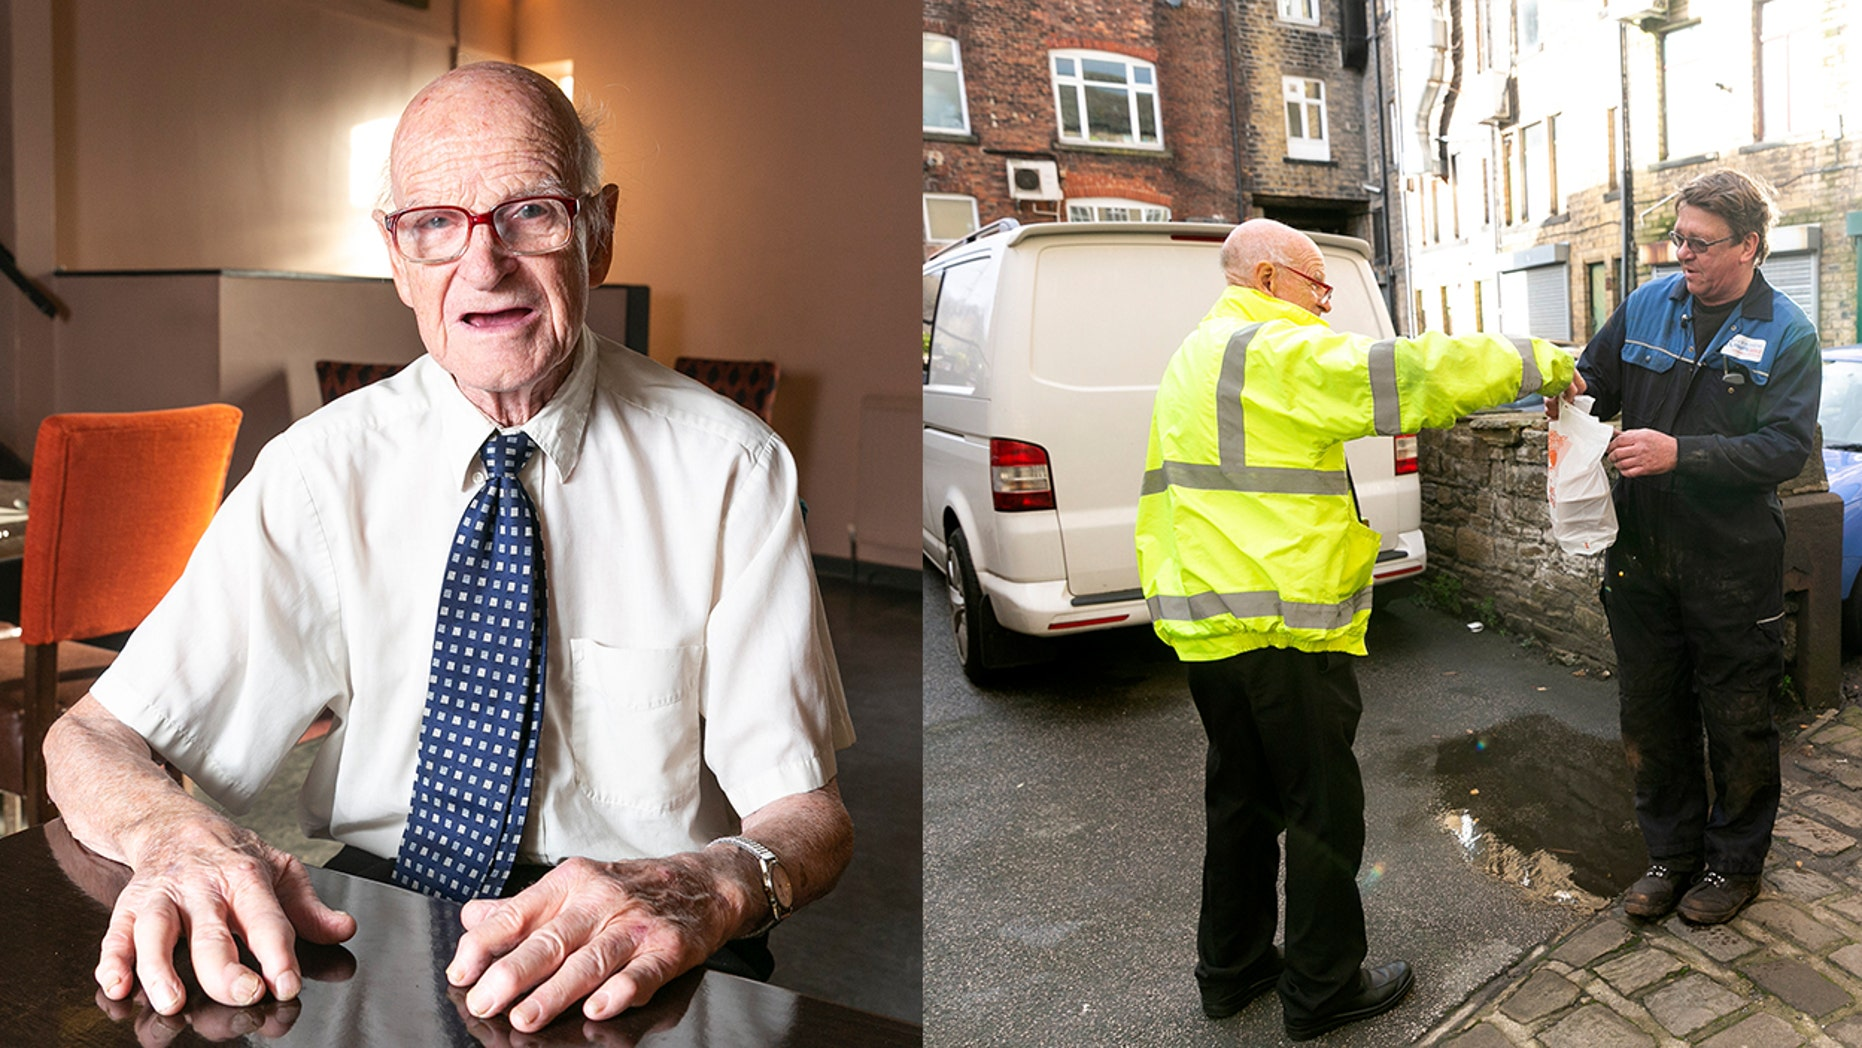 Dapper great-grandad Brian Loughans is believed to be Britain's oldest takeout delivery driver.